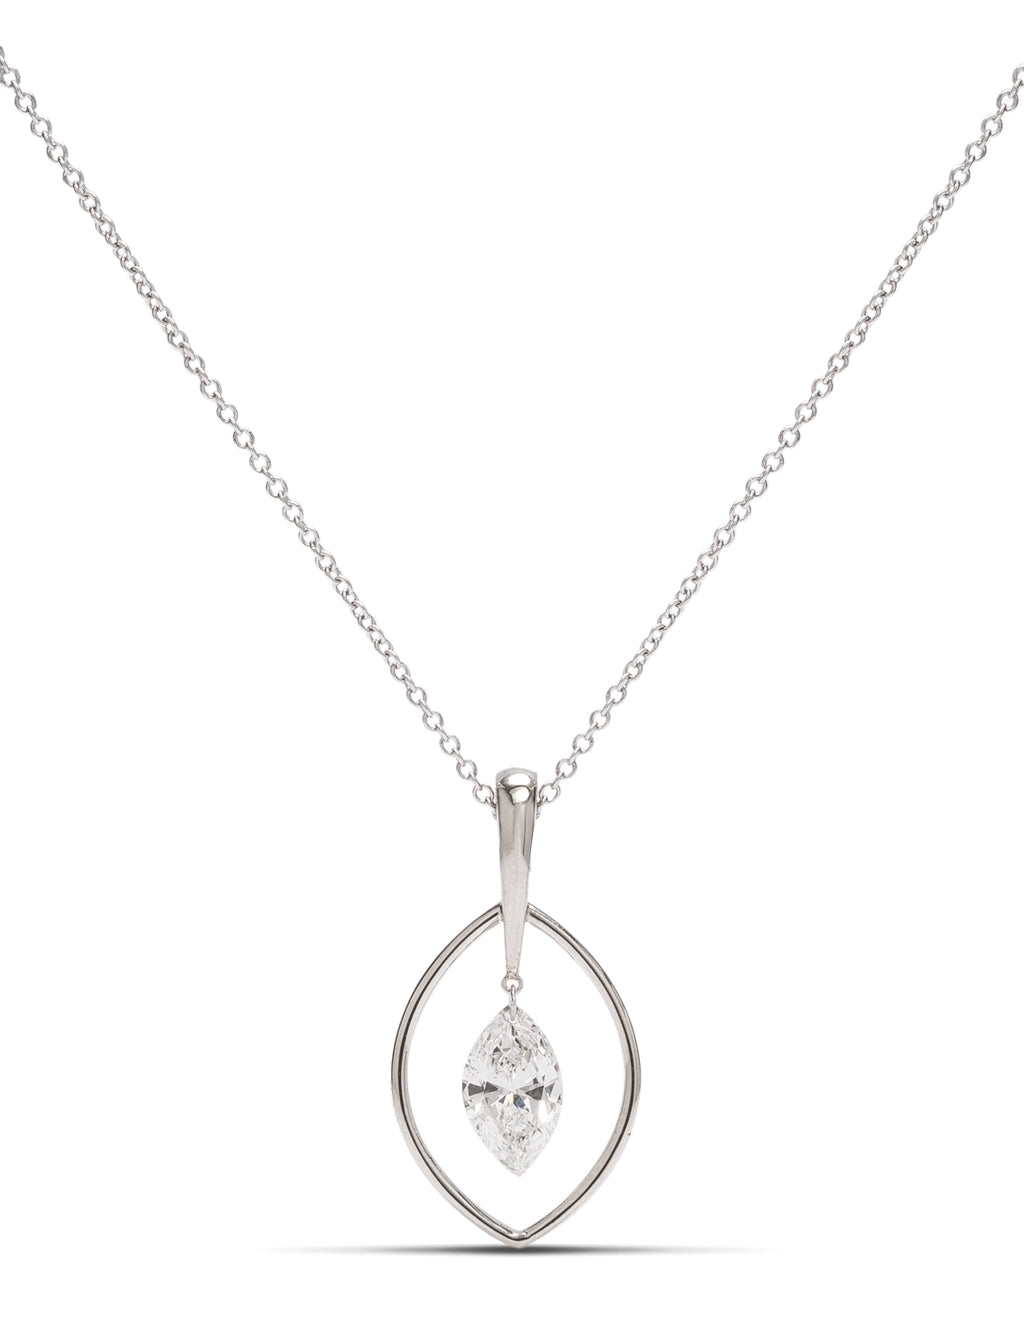 0.68ct Marquise Cut Dancing Diamond Pendant - Charles Koll Jewellers